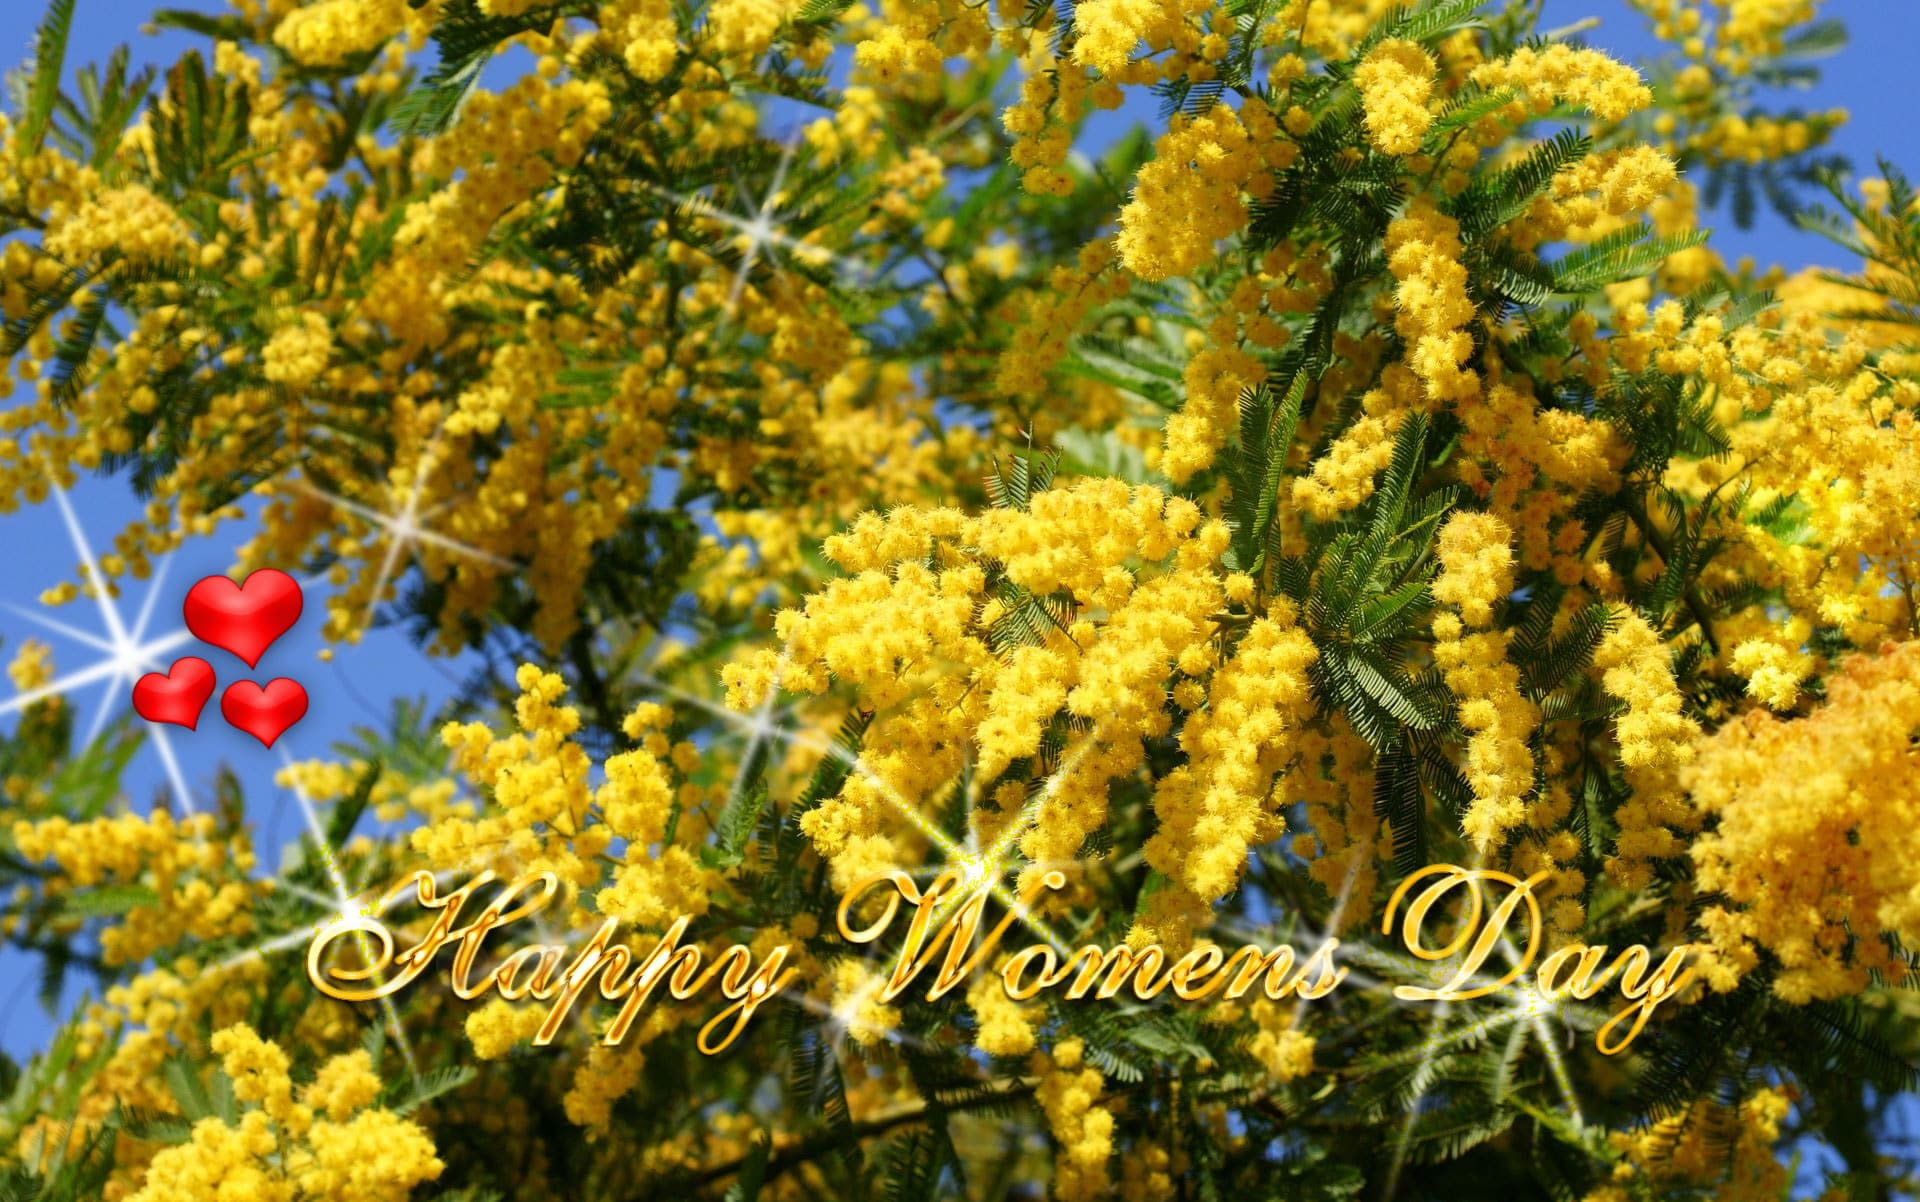 Women's Day 2017 Facebook Cover Images, Pic